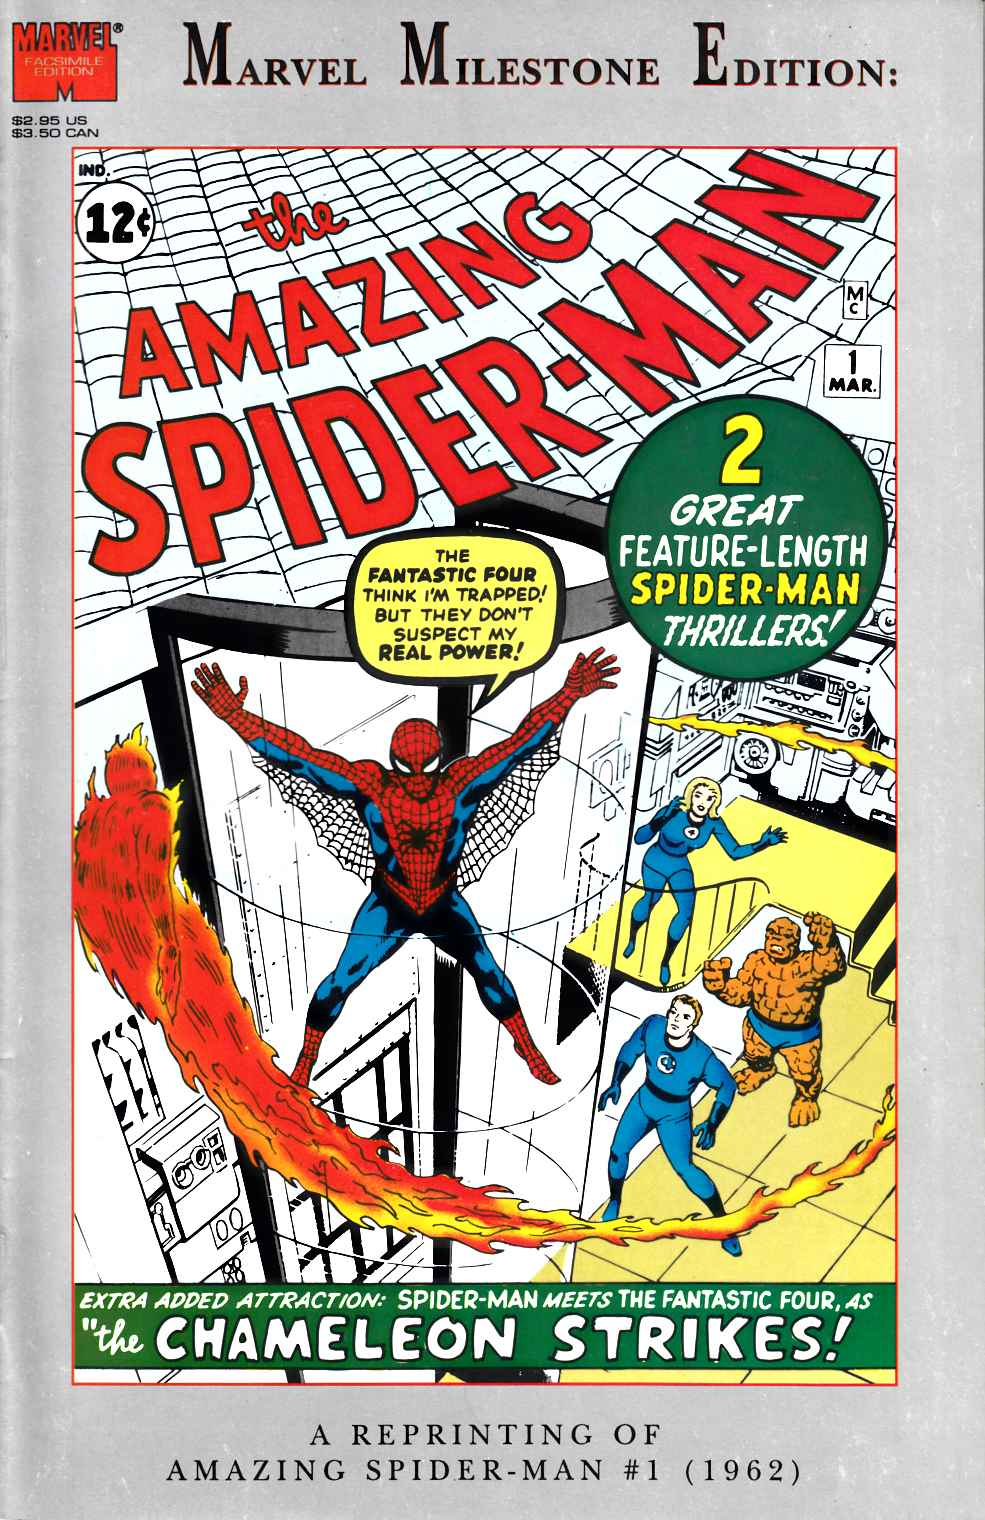 Amazing Spider-Man #1 Marvel Milestone Edition Very Fine Plus (8.5) [Marvel Comic]